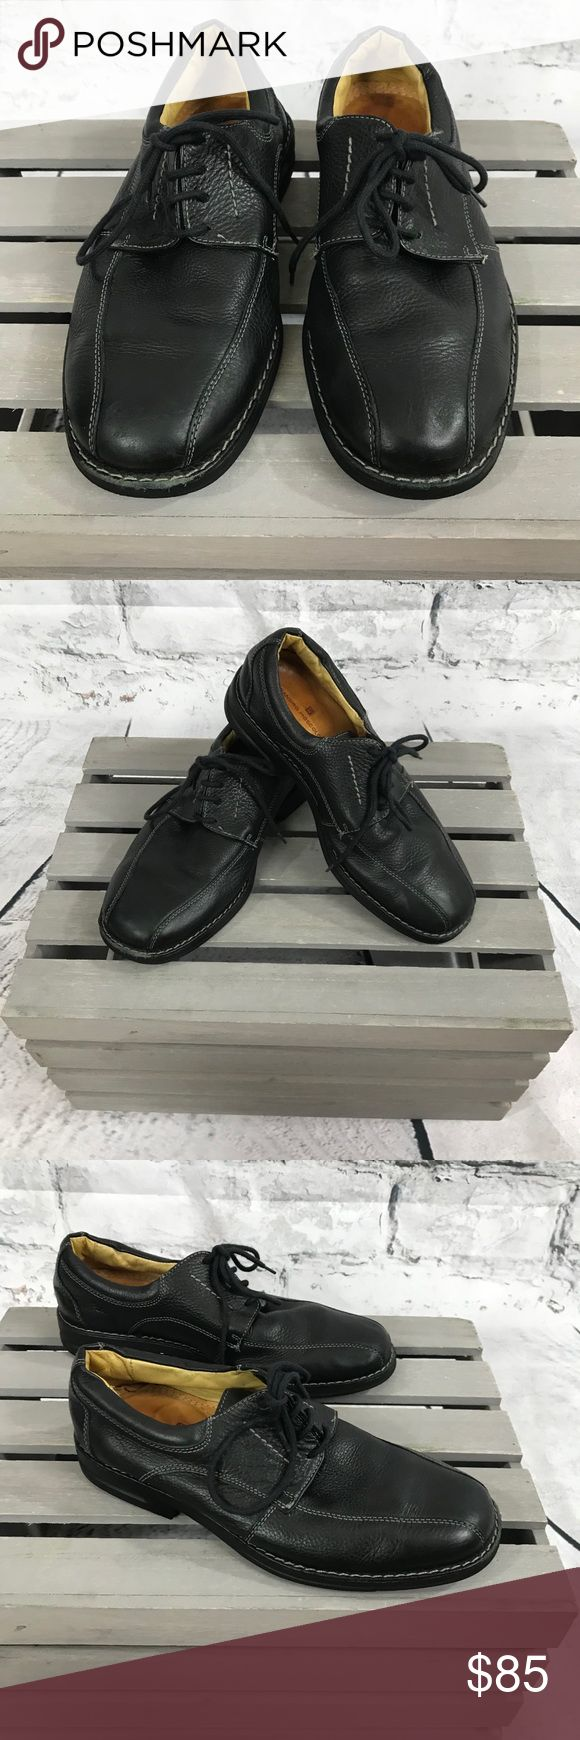 MENS Sandro Moscololoni black lace up oxford MENS Sandro Moscololoni black lace up oxford  High quality leather shoe  Flexibility Technology sole  Size: 8 medium  Condition: preloved in good condition   Thank you for checking out our closet Please feel free to bundle and save Sandro Moscoloni Shoes Loafers & Slip-Ons